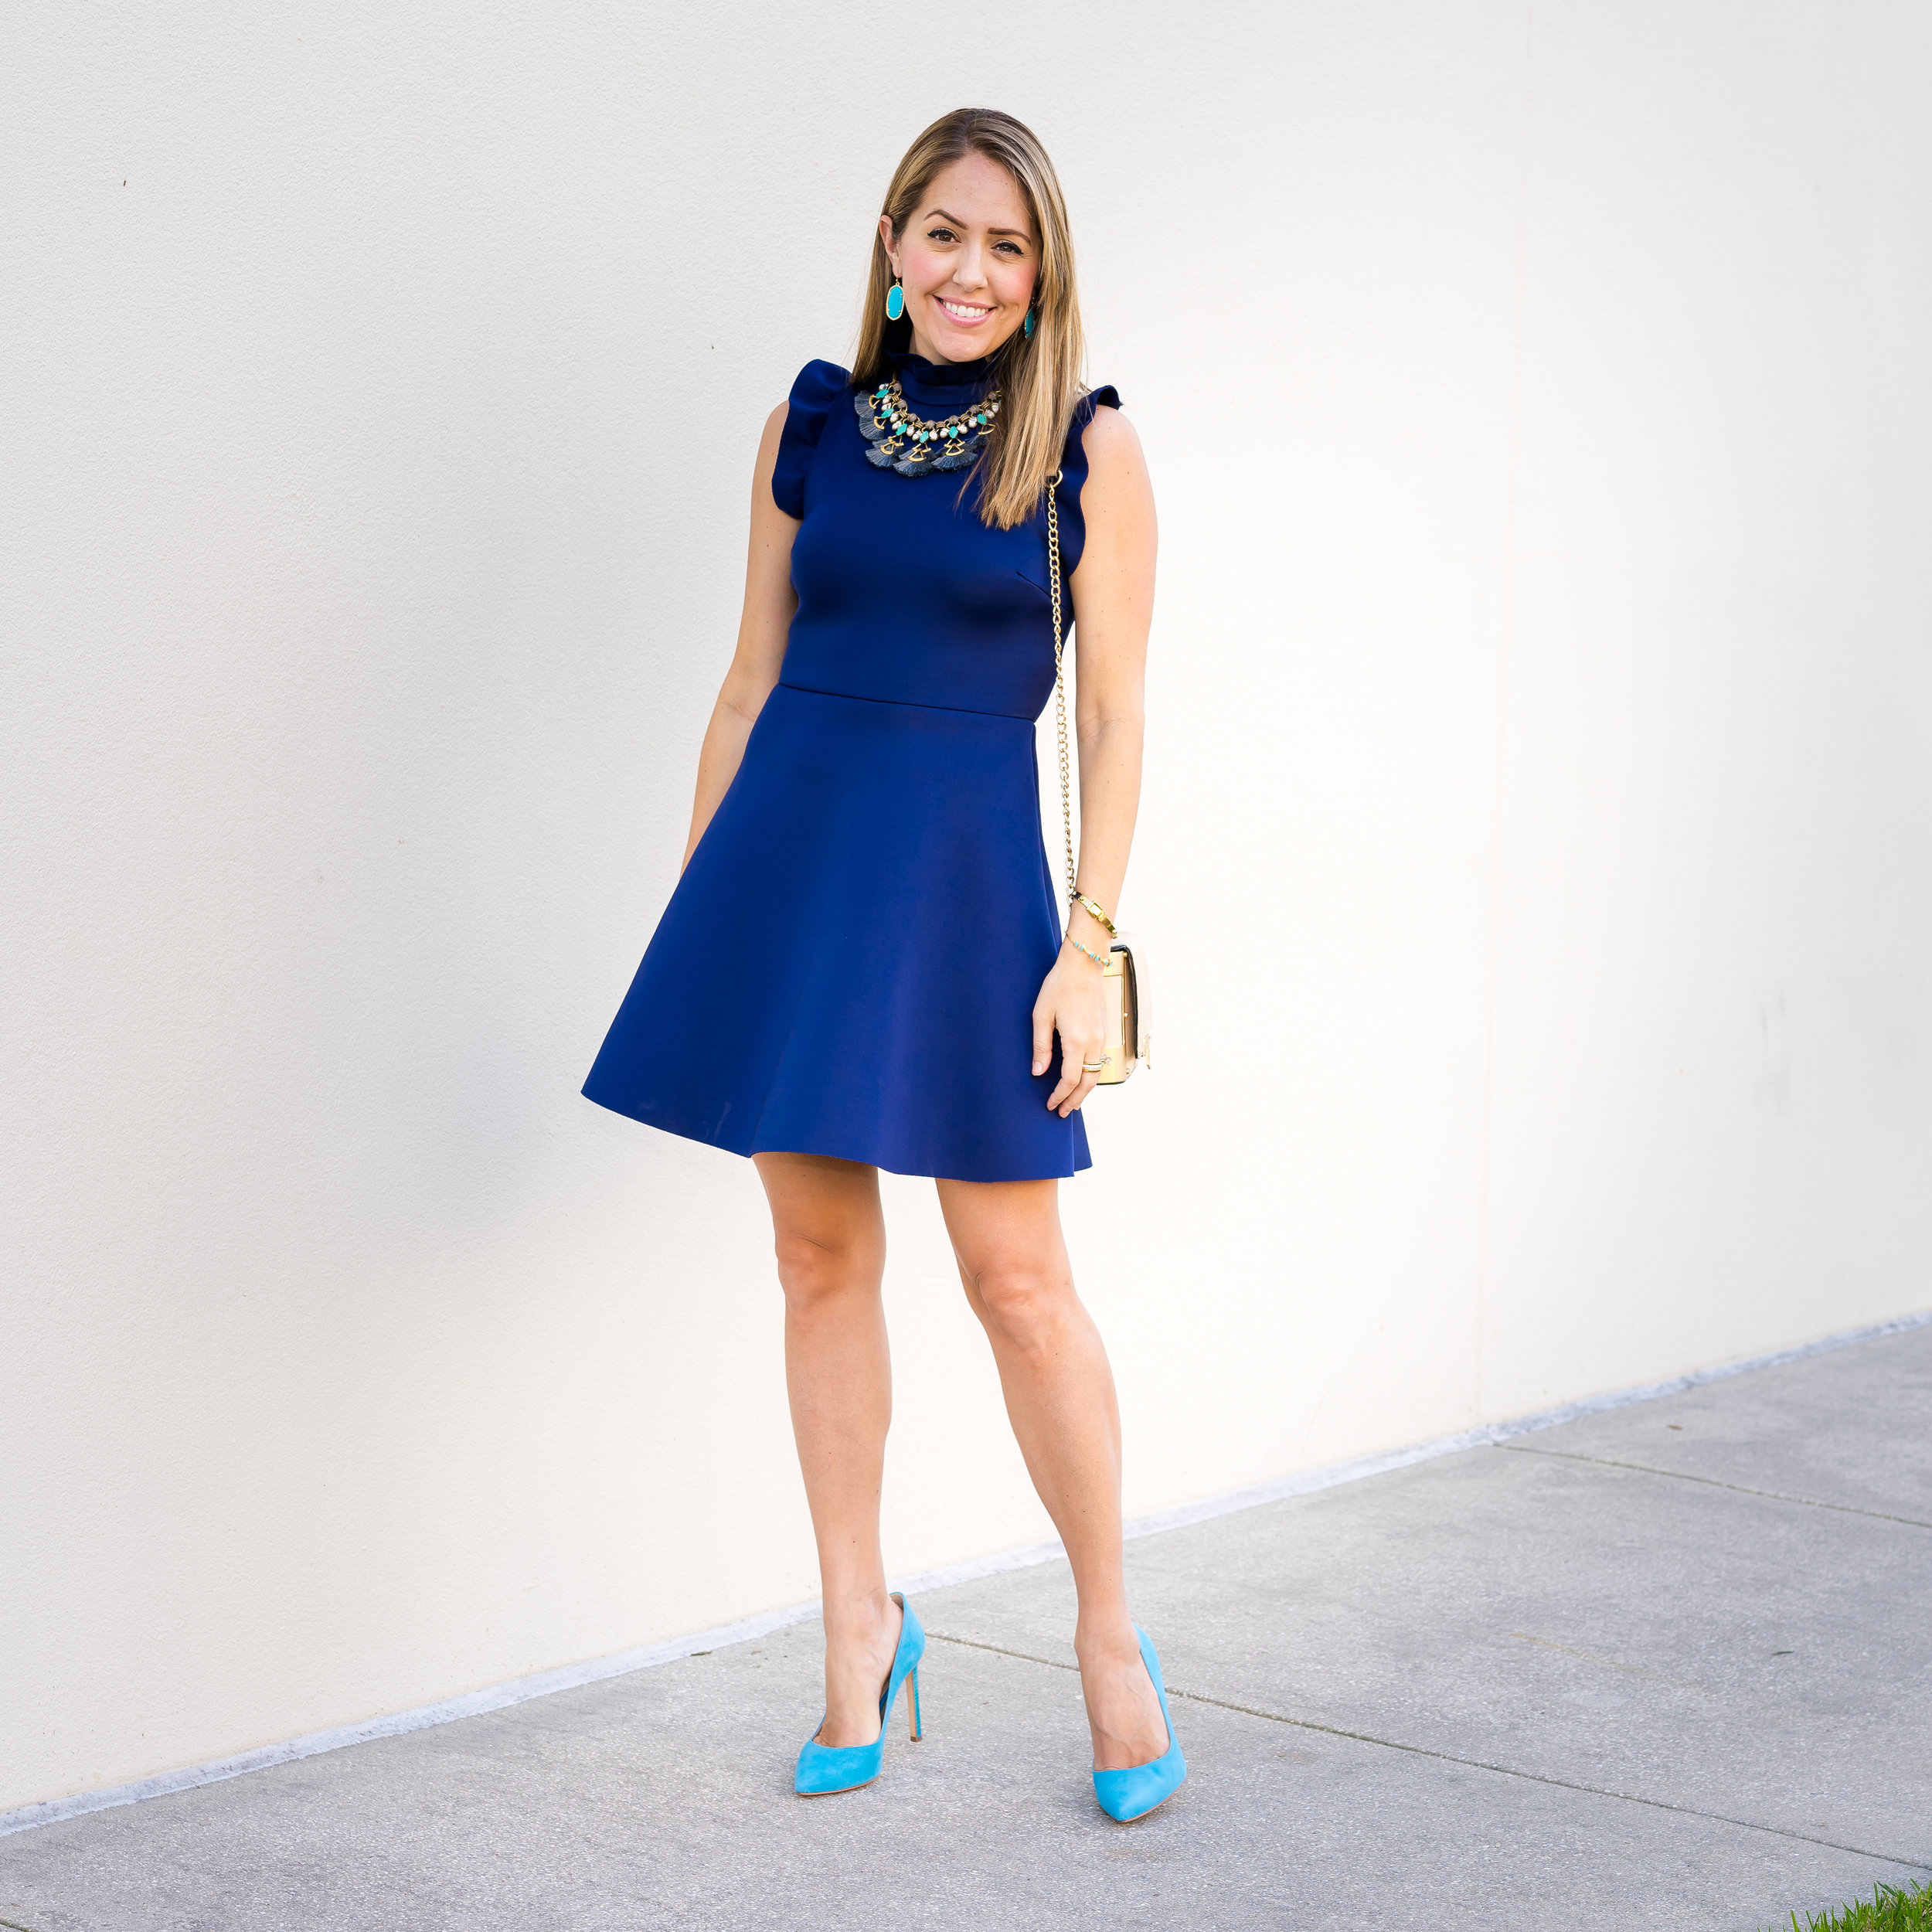 Navy dress, turquoise earrings and pumps